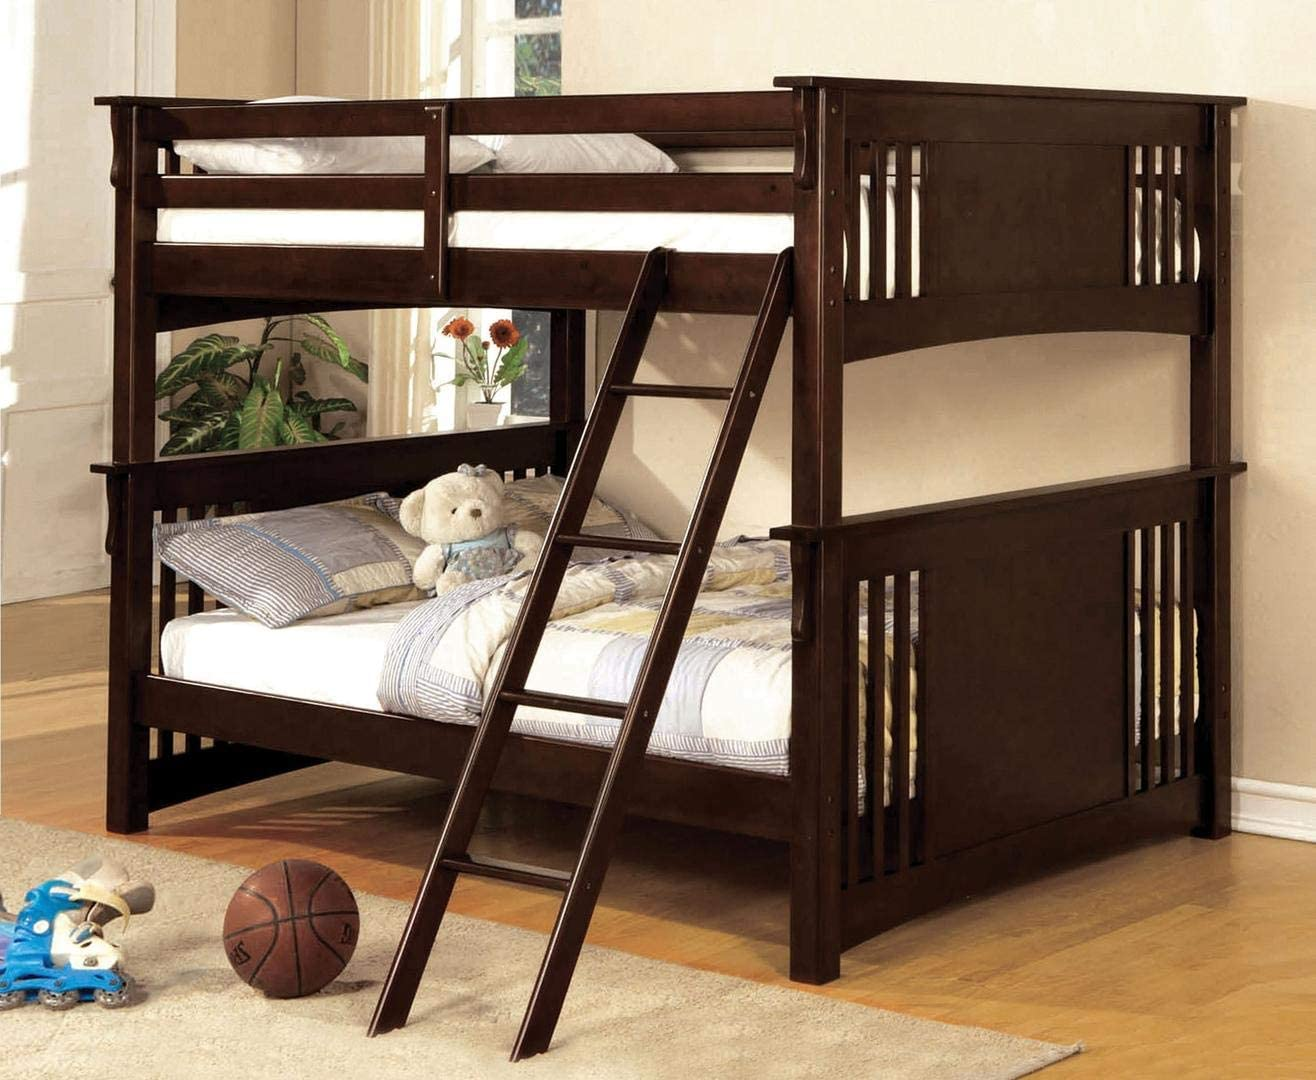 William s Home Furnishing Spring Creek Bunk, Dark Walnut